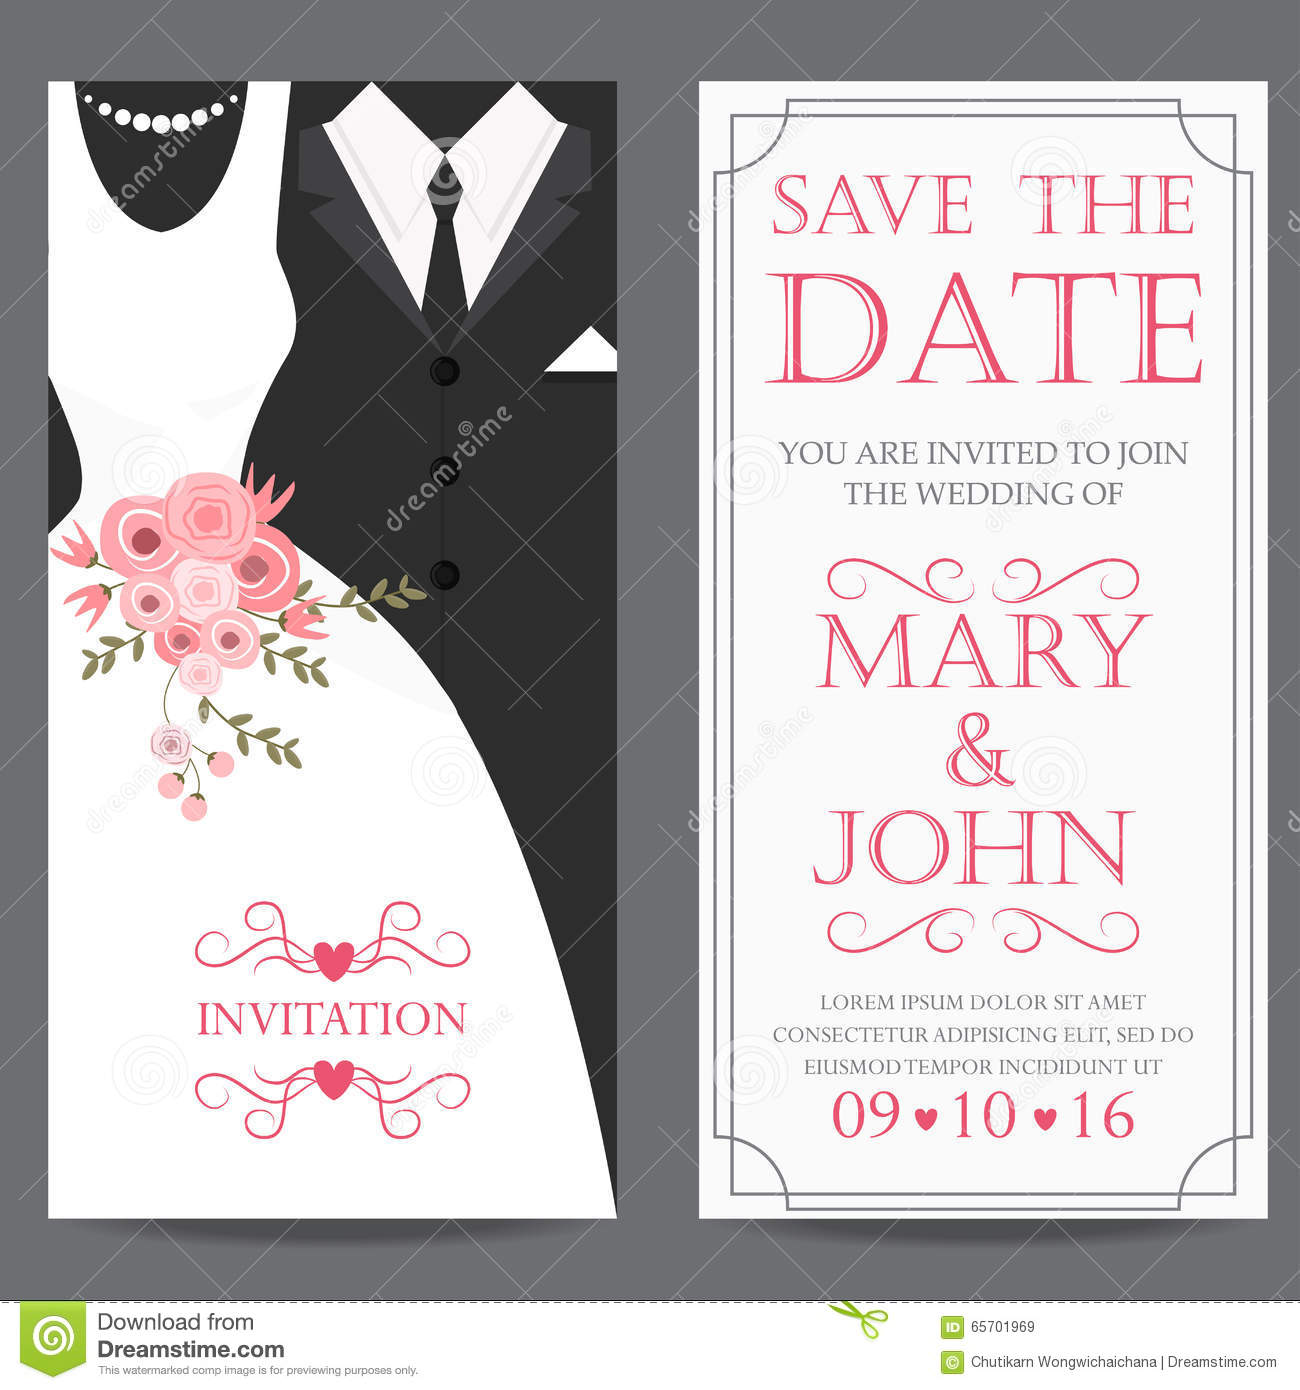 Bride and groom wedding invitation card stock vector for Brides wedding invitations